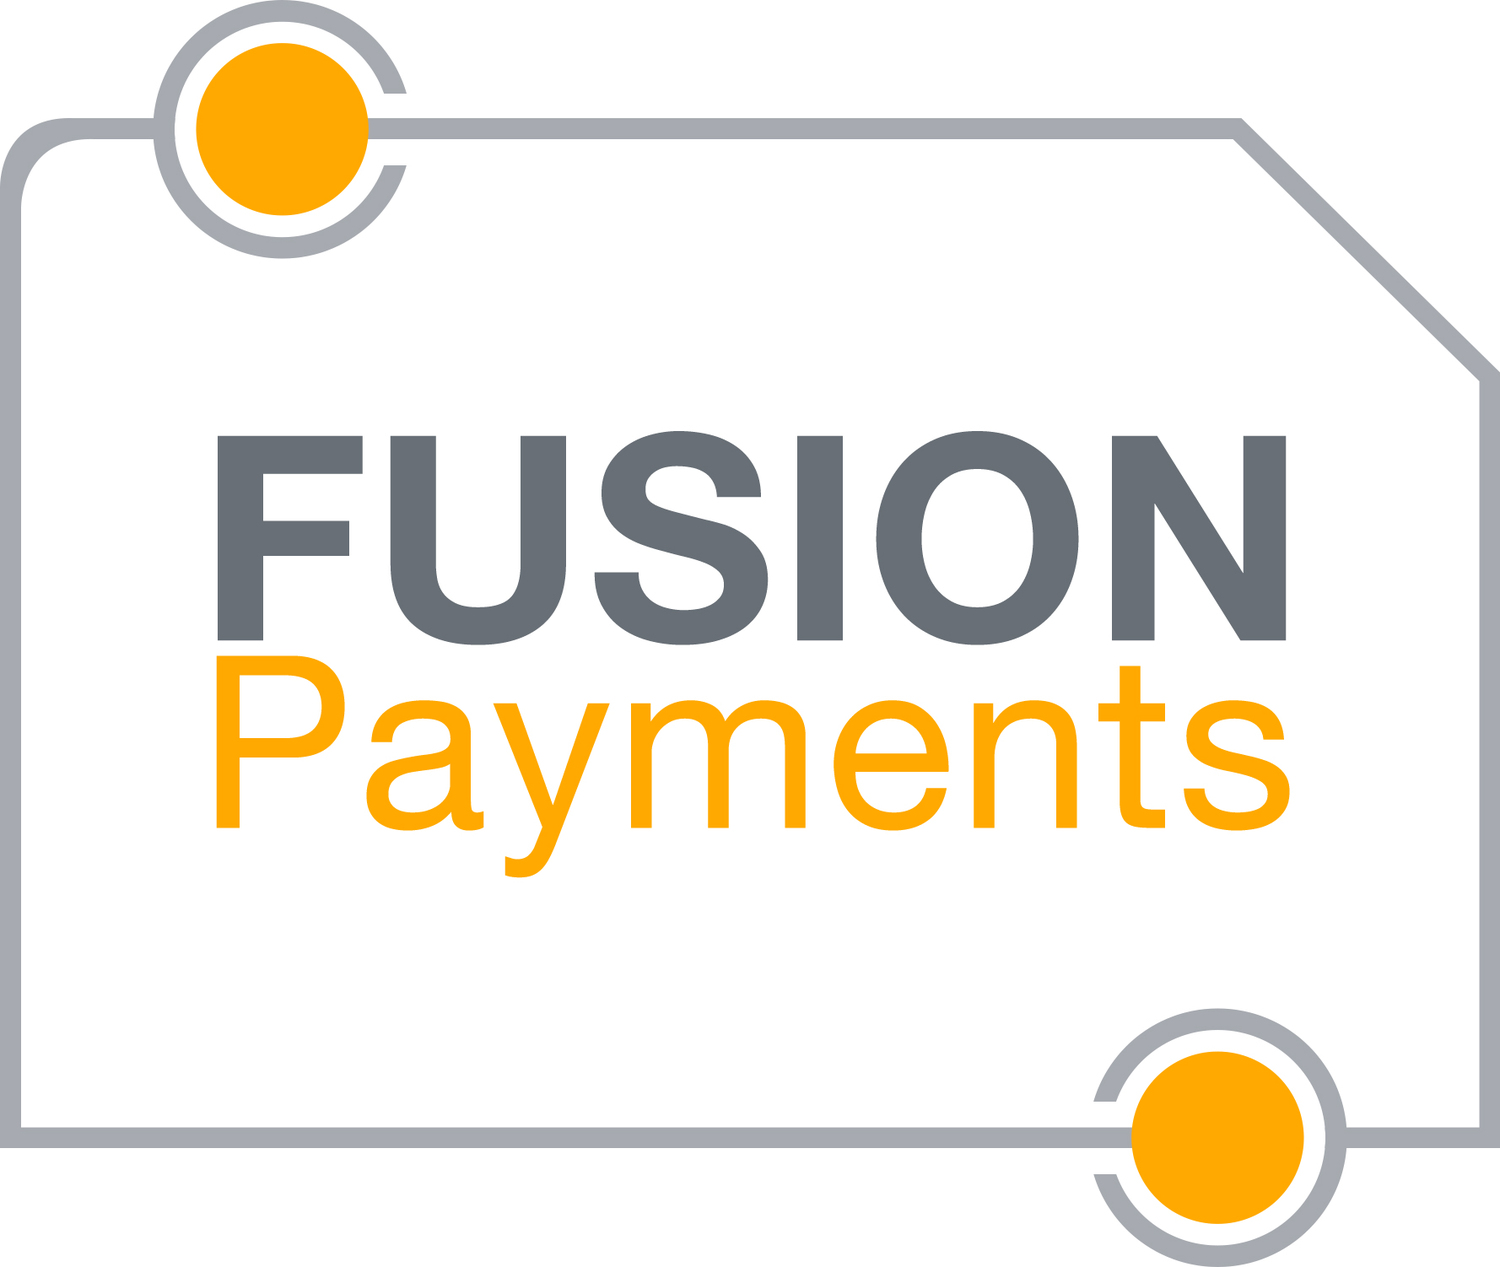 Fusion Payments